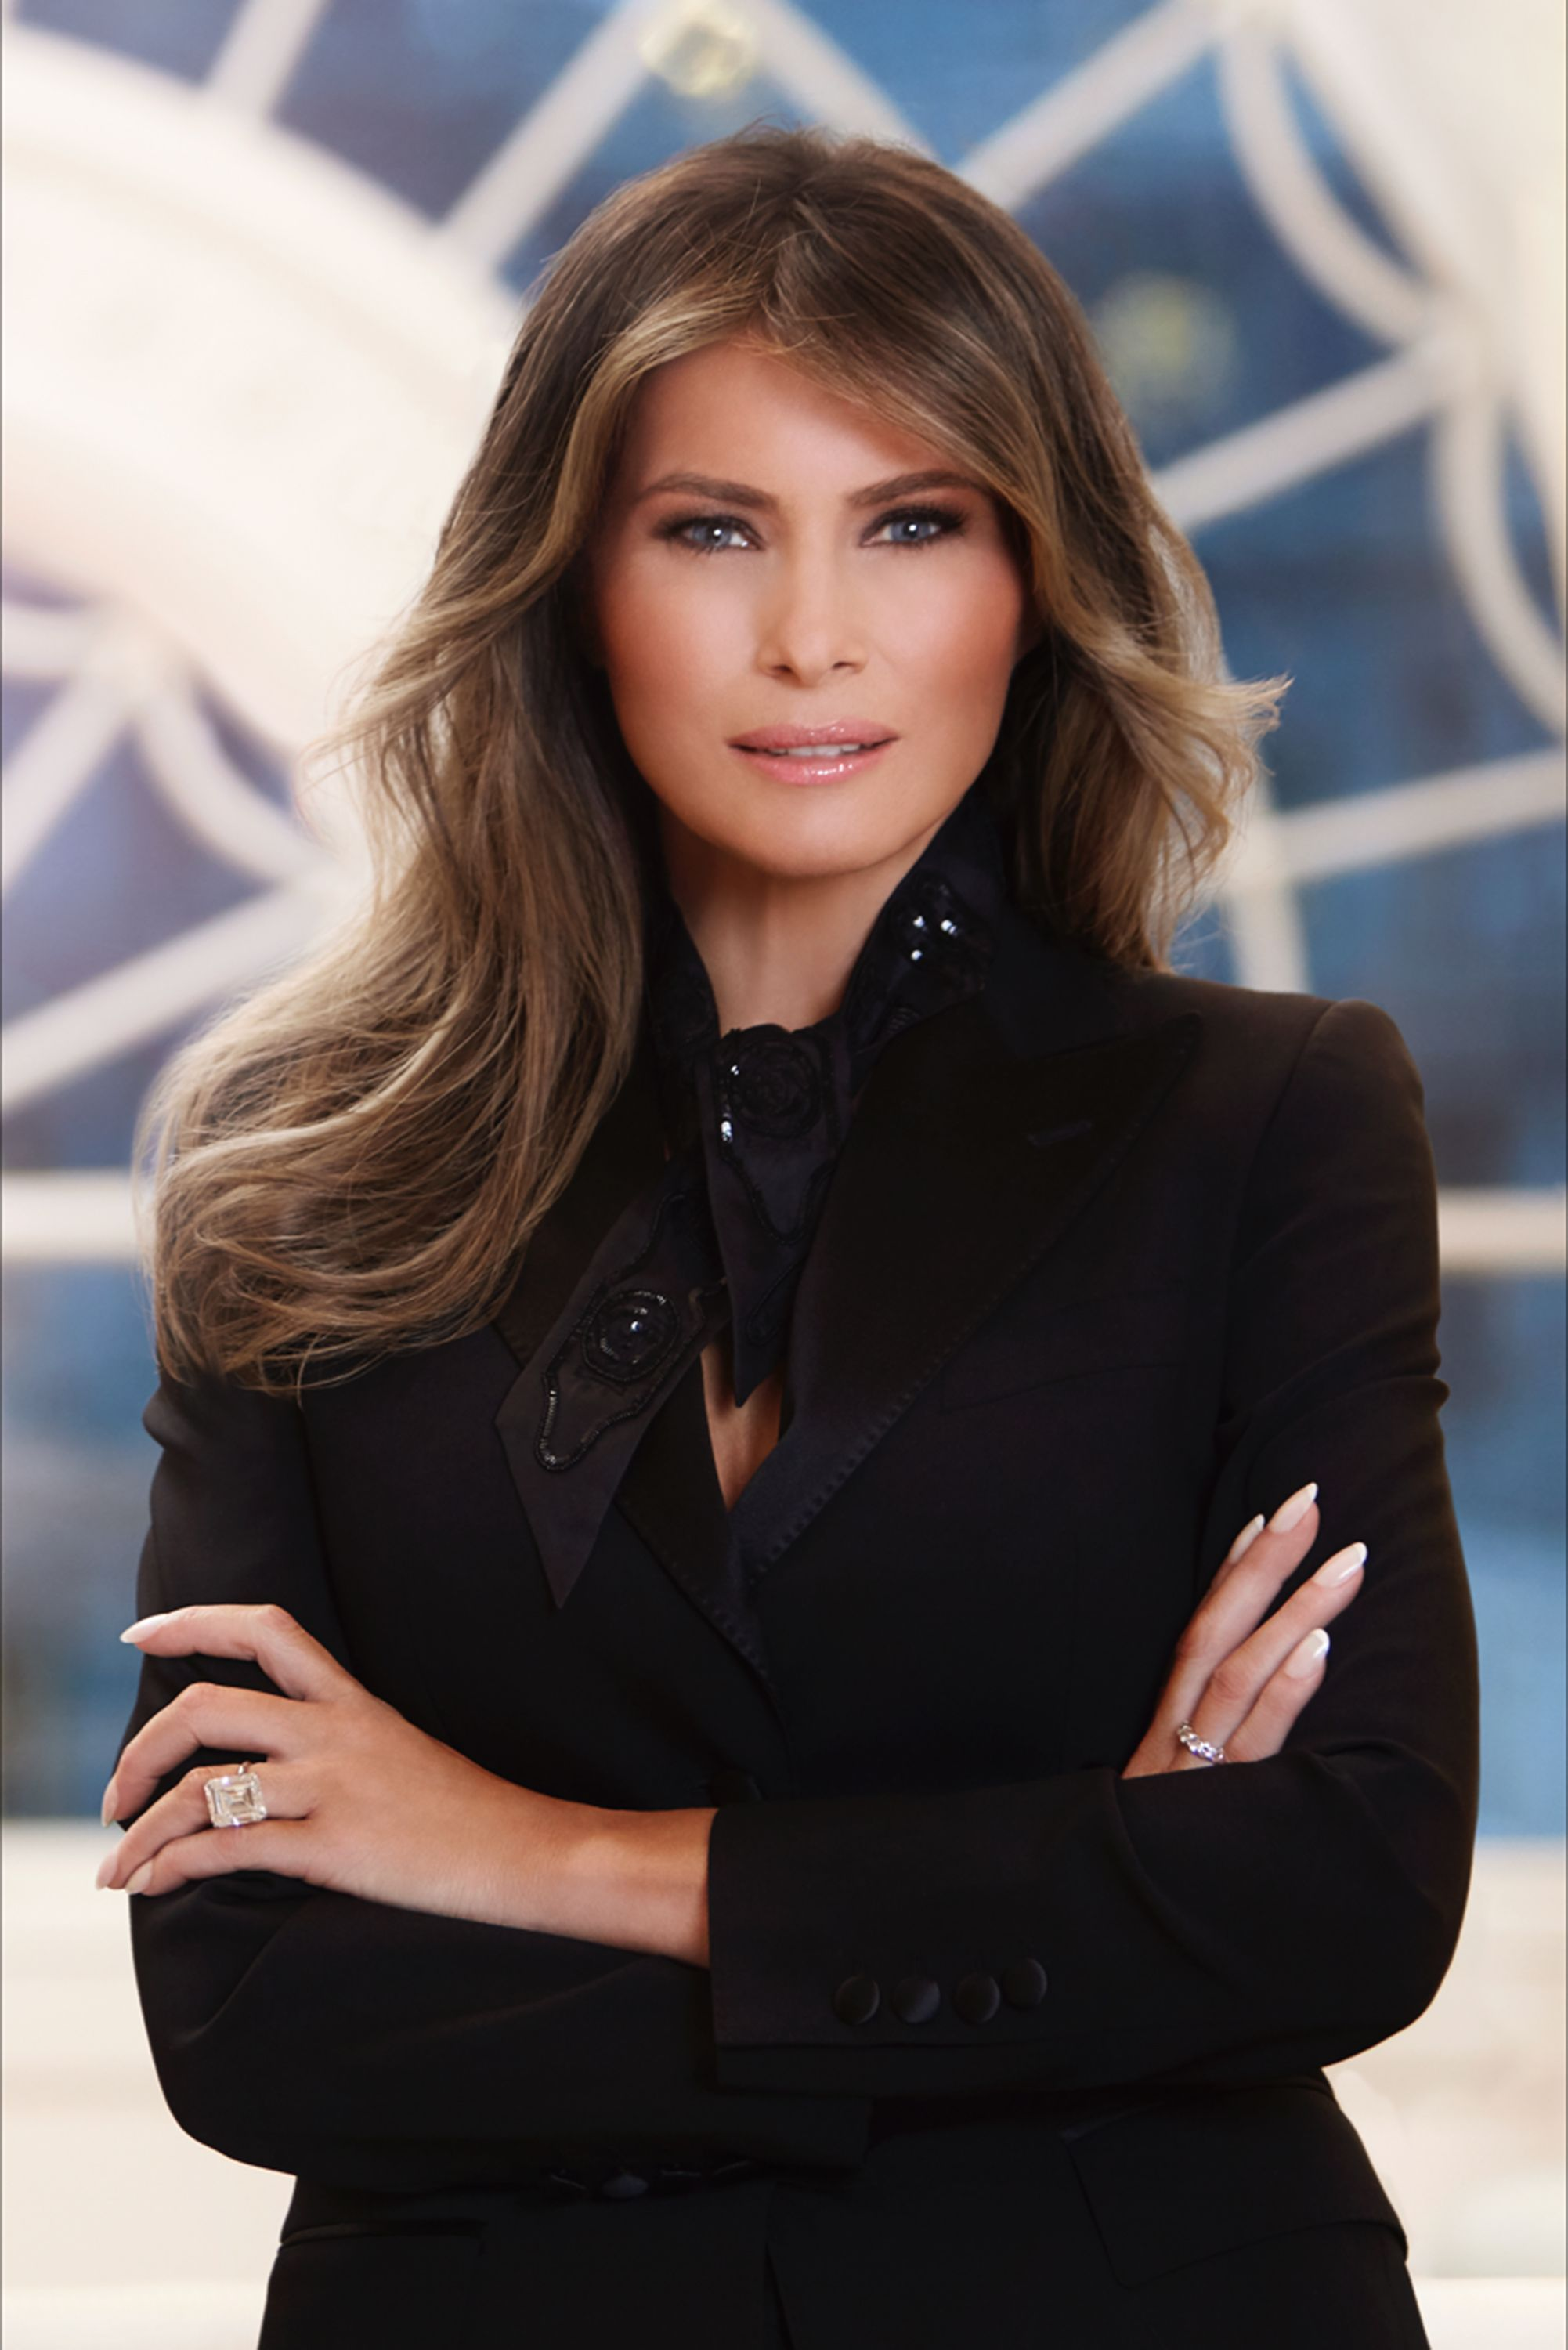 First Lady Melania Trump poses for her official portrait April 2017 in Washington, DC | Photo: Getty Images